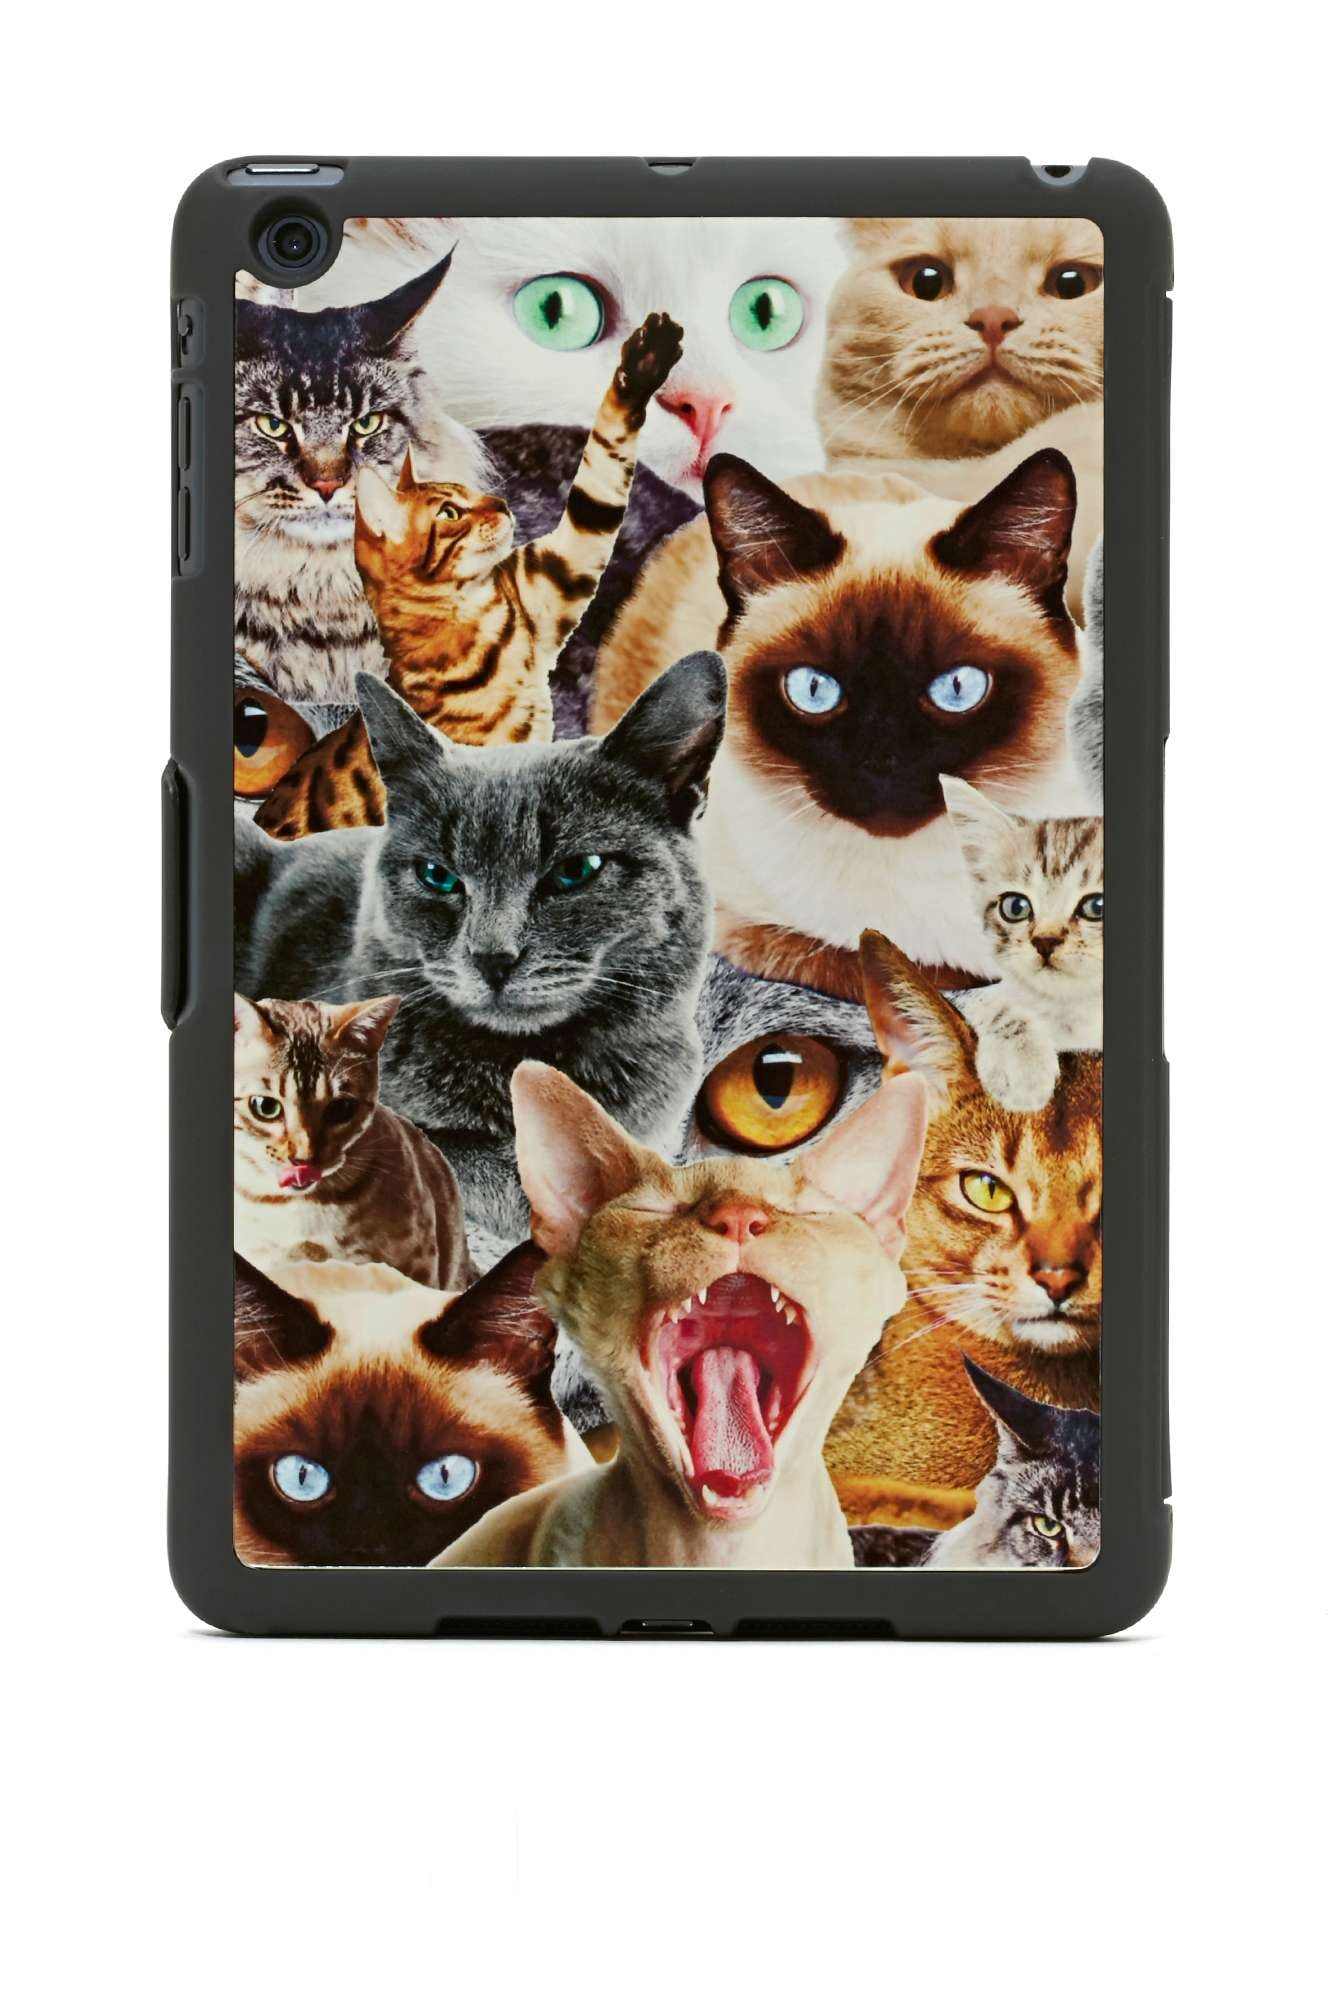 There's so much 'tude going on in this cat riot iPad Mini case ($27, originally $38), we don't even know where to start.